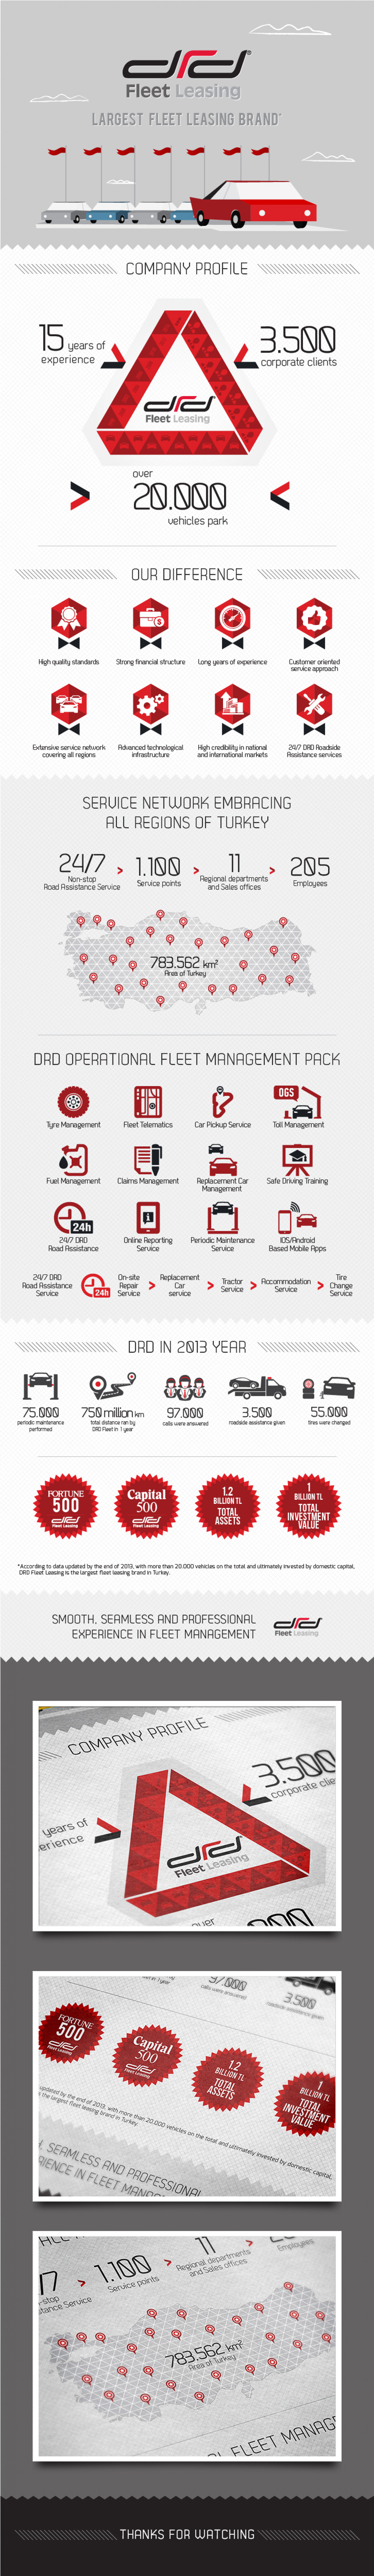 DRD Fleet Leasing Infographic